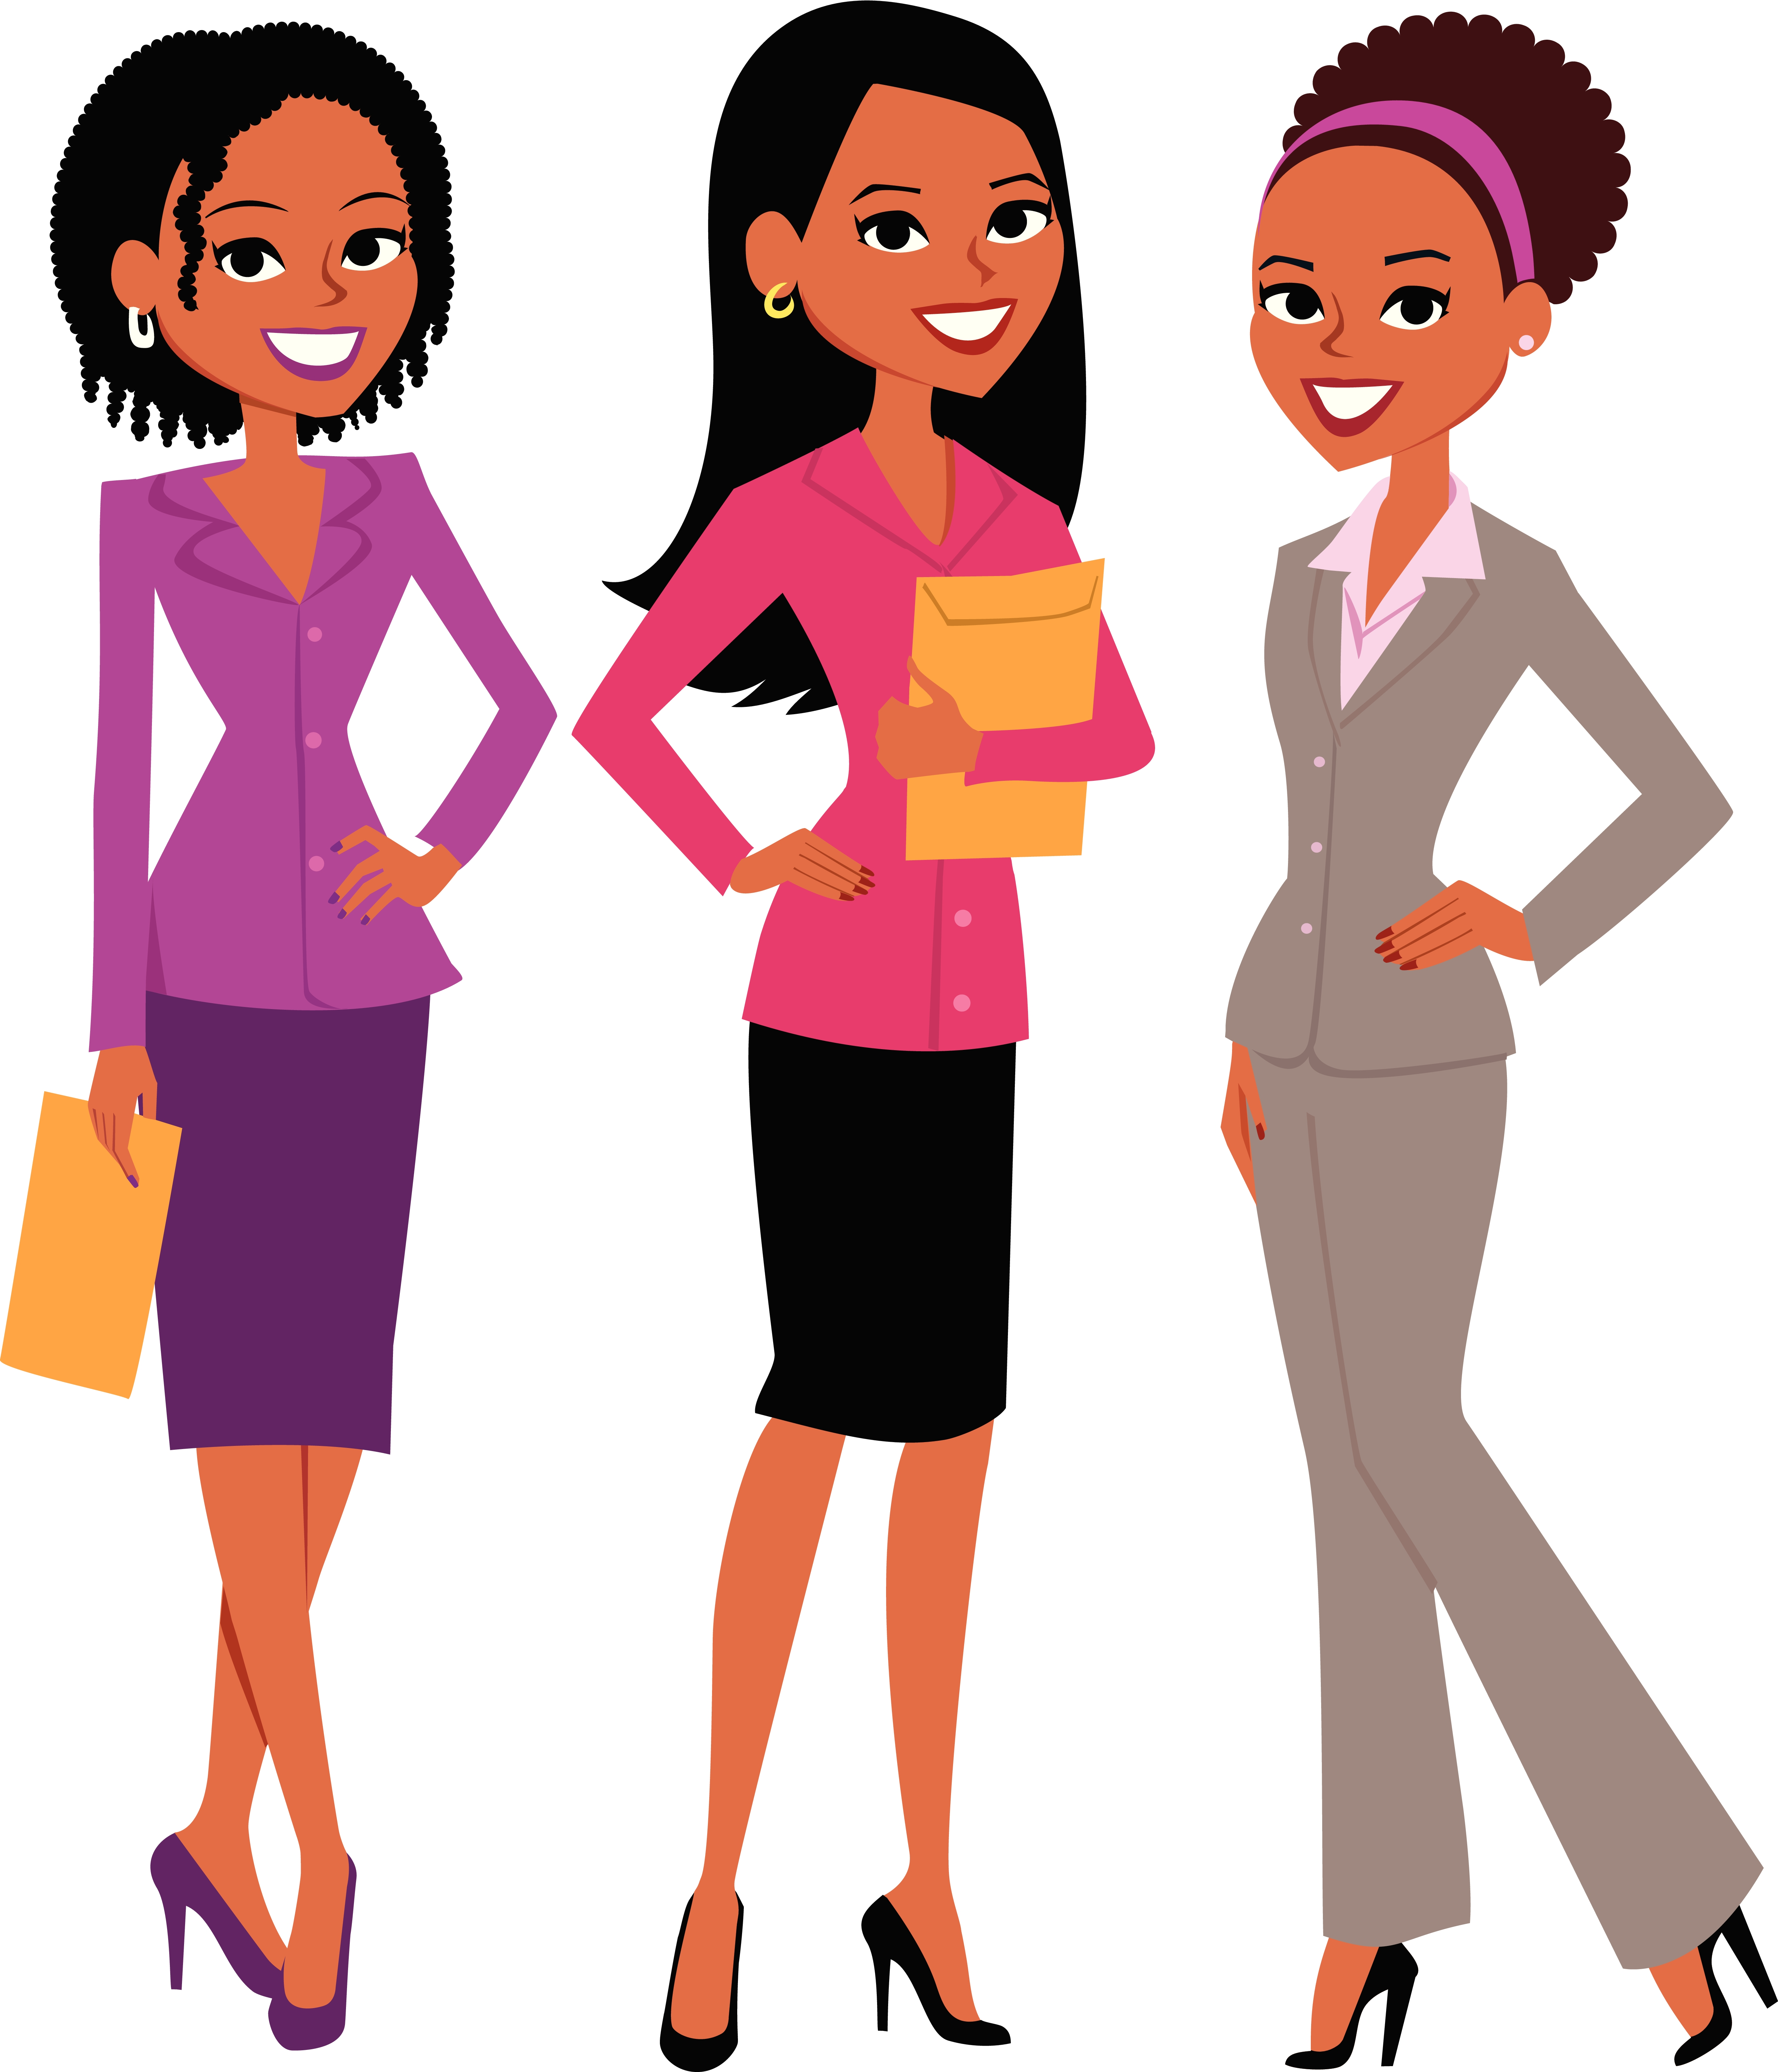 5149x6000 It's Welcome To Our Network! Black Female Accountants Network